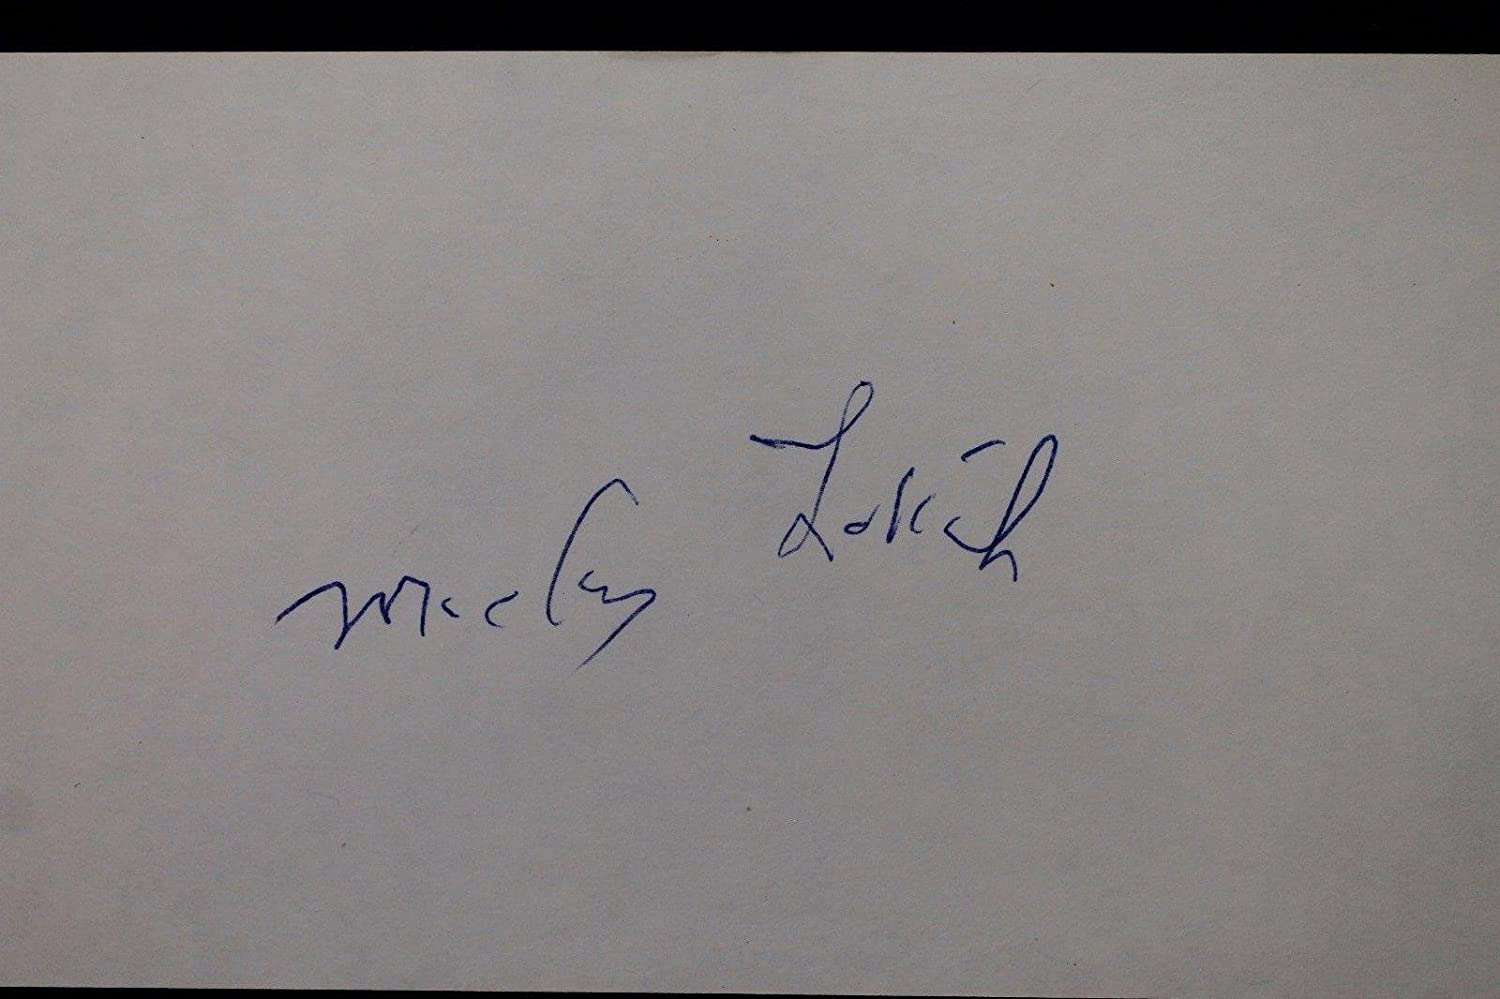 Mickey Lolich Padres Tigers Mets Autographed 3x5 Signed Index Card 17D - JSA Certified - MLB Cut Signatures